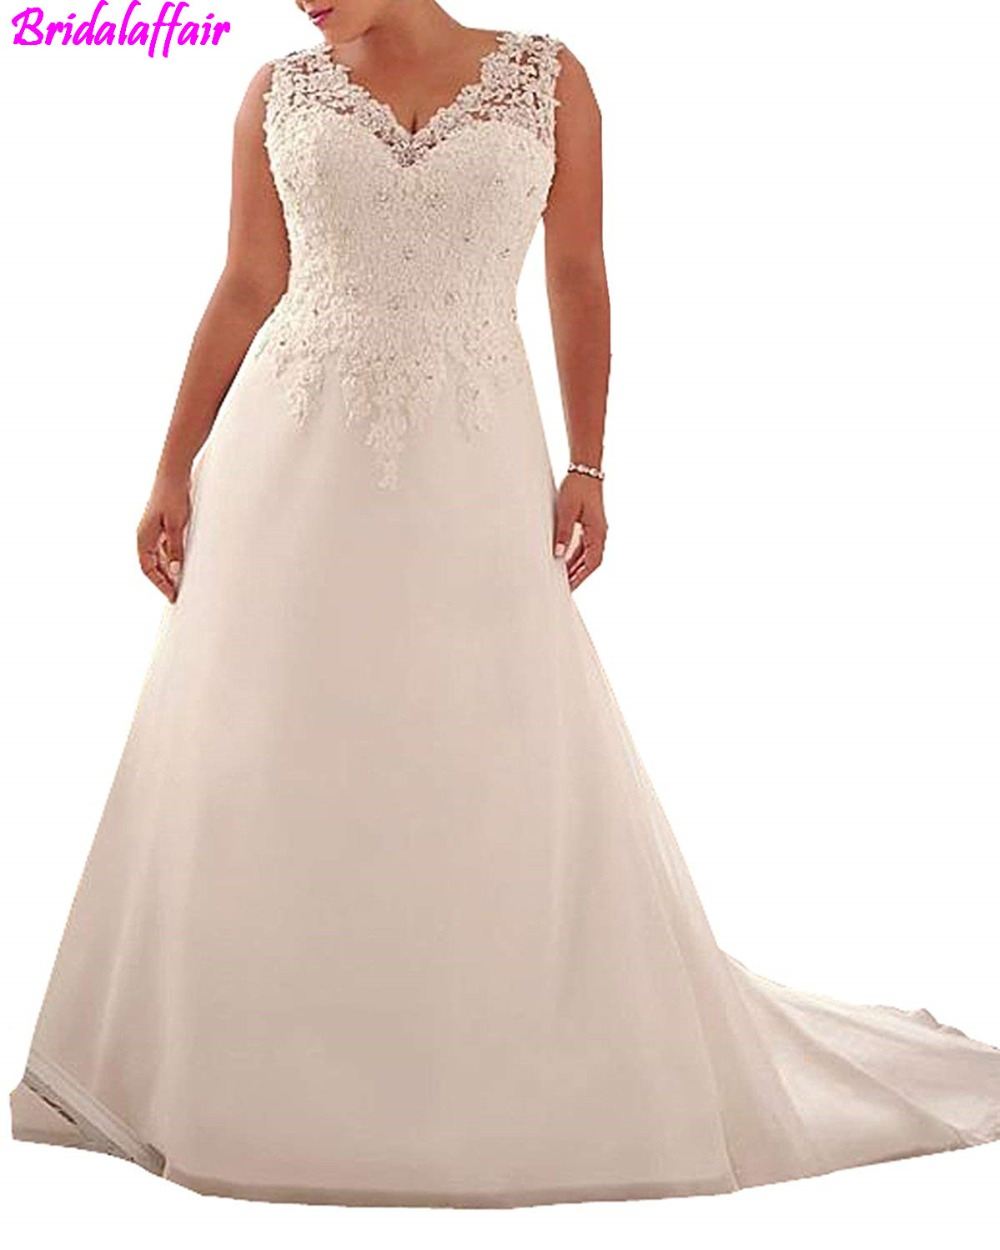 2018 a line Wedding Dress Applique with Beading Long Bridal Dress for Women's bridal dress sexy wedding dress vestiti da sposa